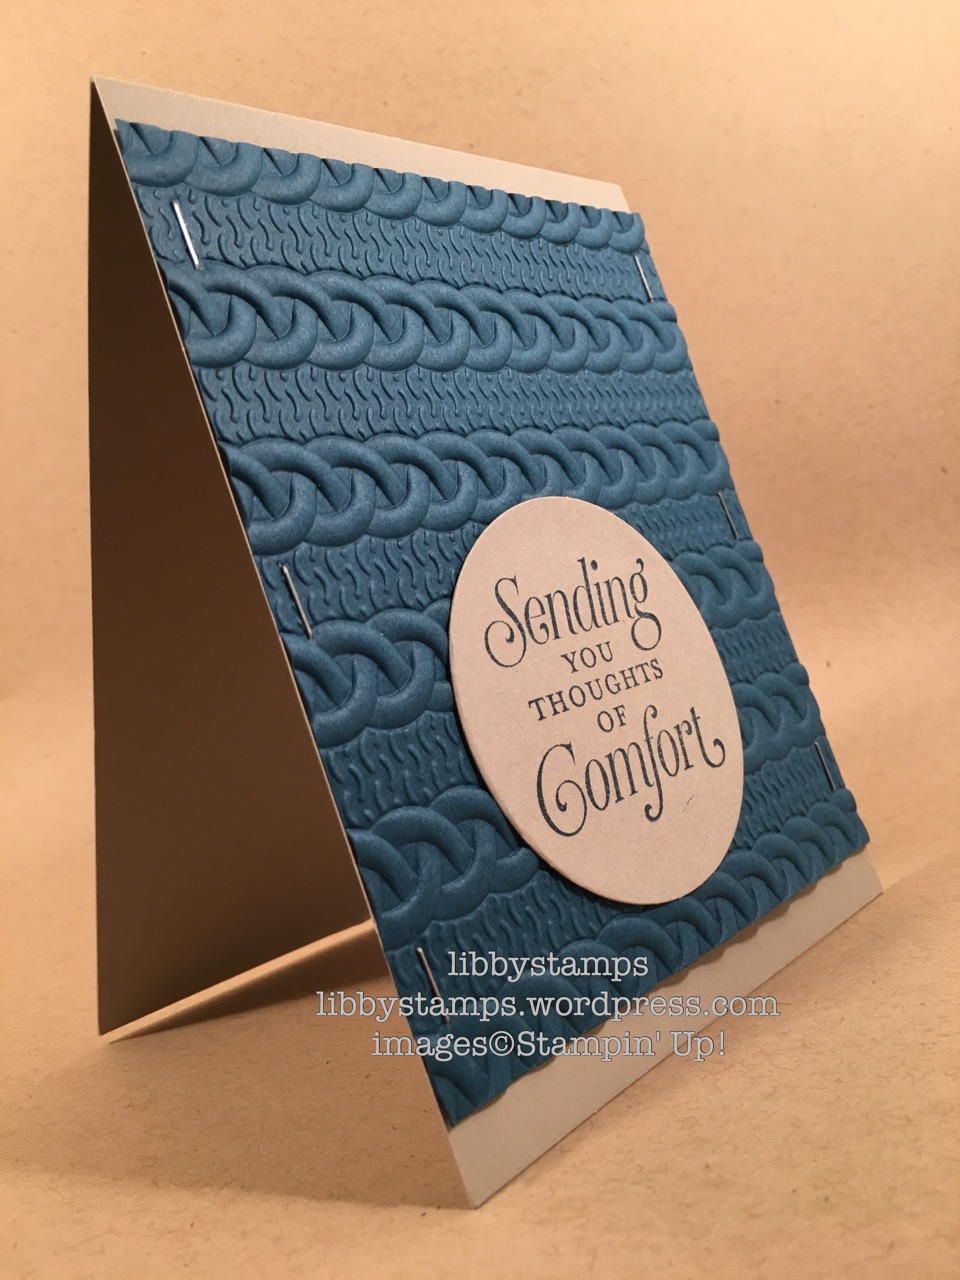 libbystamps, stampin up, Suite Seasons, Cable Knit Dynamic EF, Layering Circles Framelits, Mini Stapler, WWC, masculine